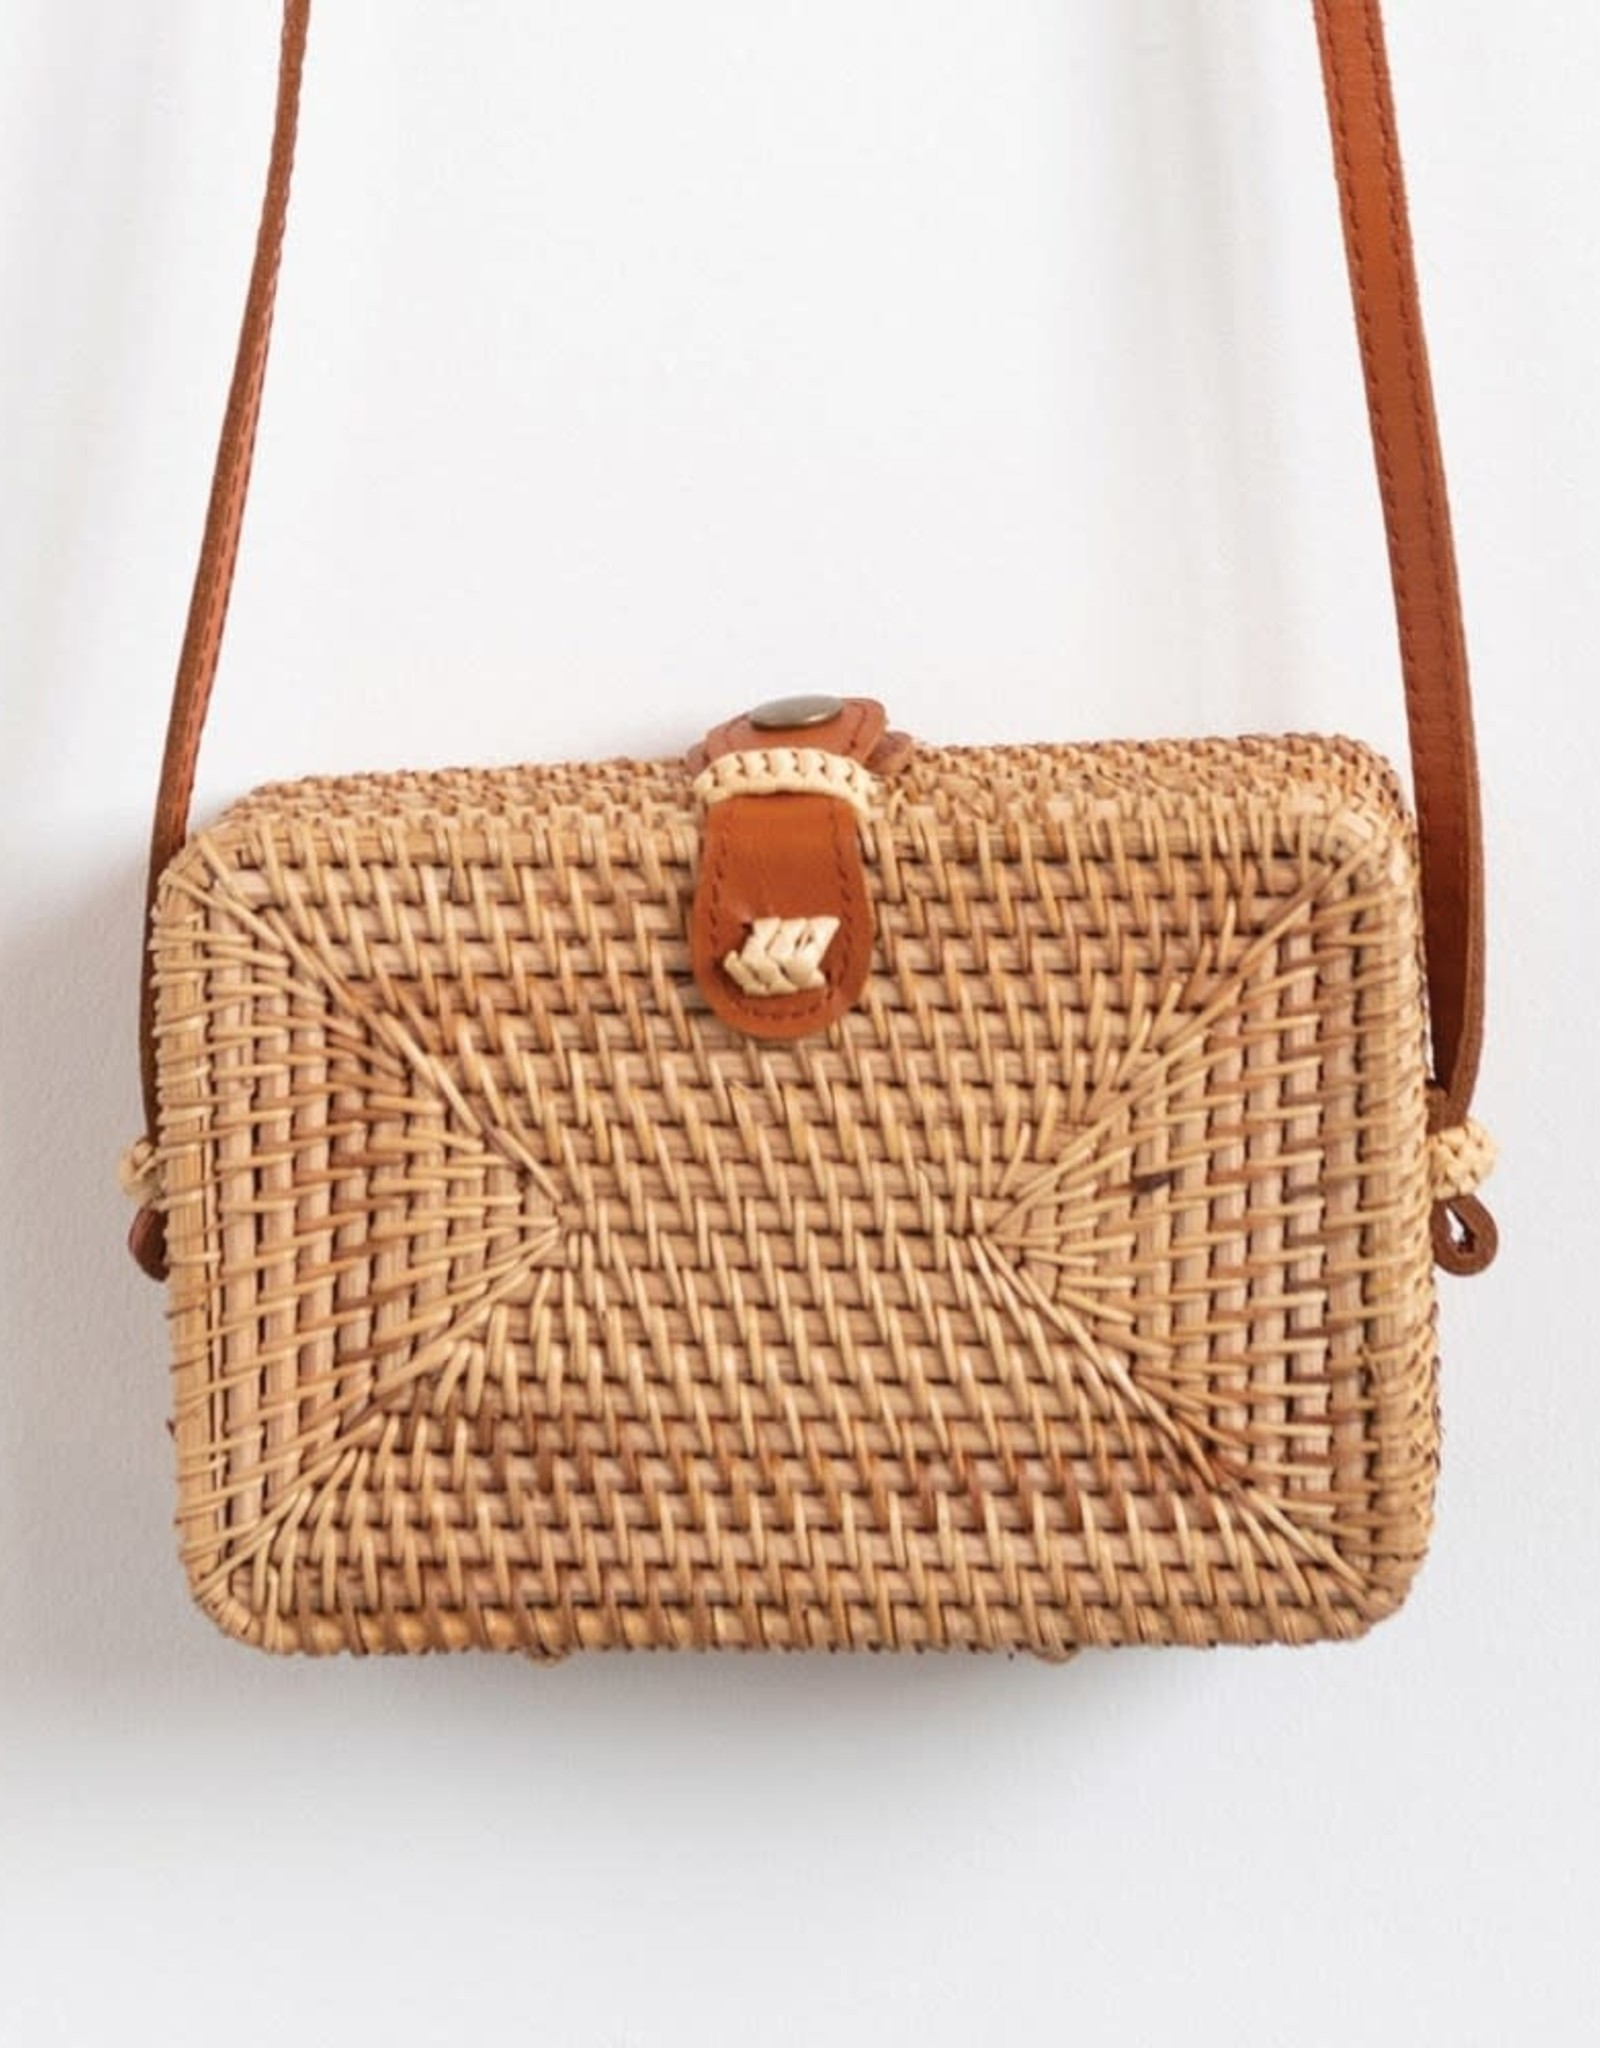 Woven Rattan Shoulder Bag With Leather Strap